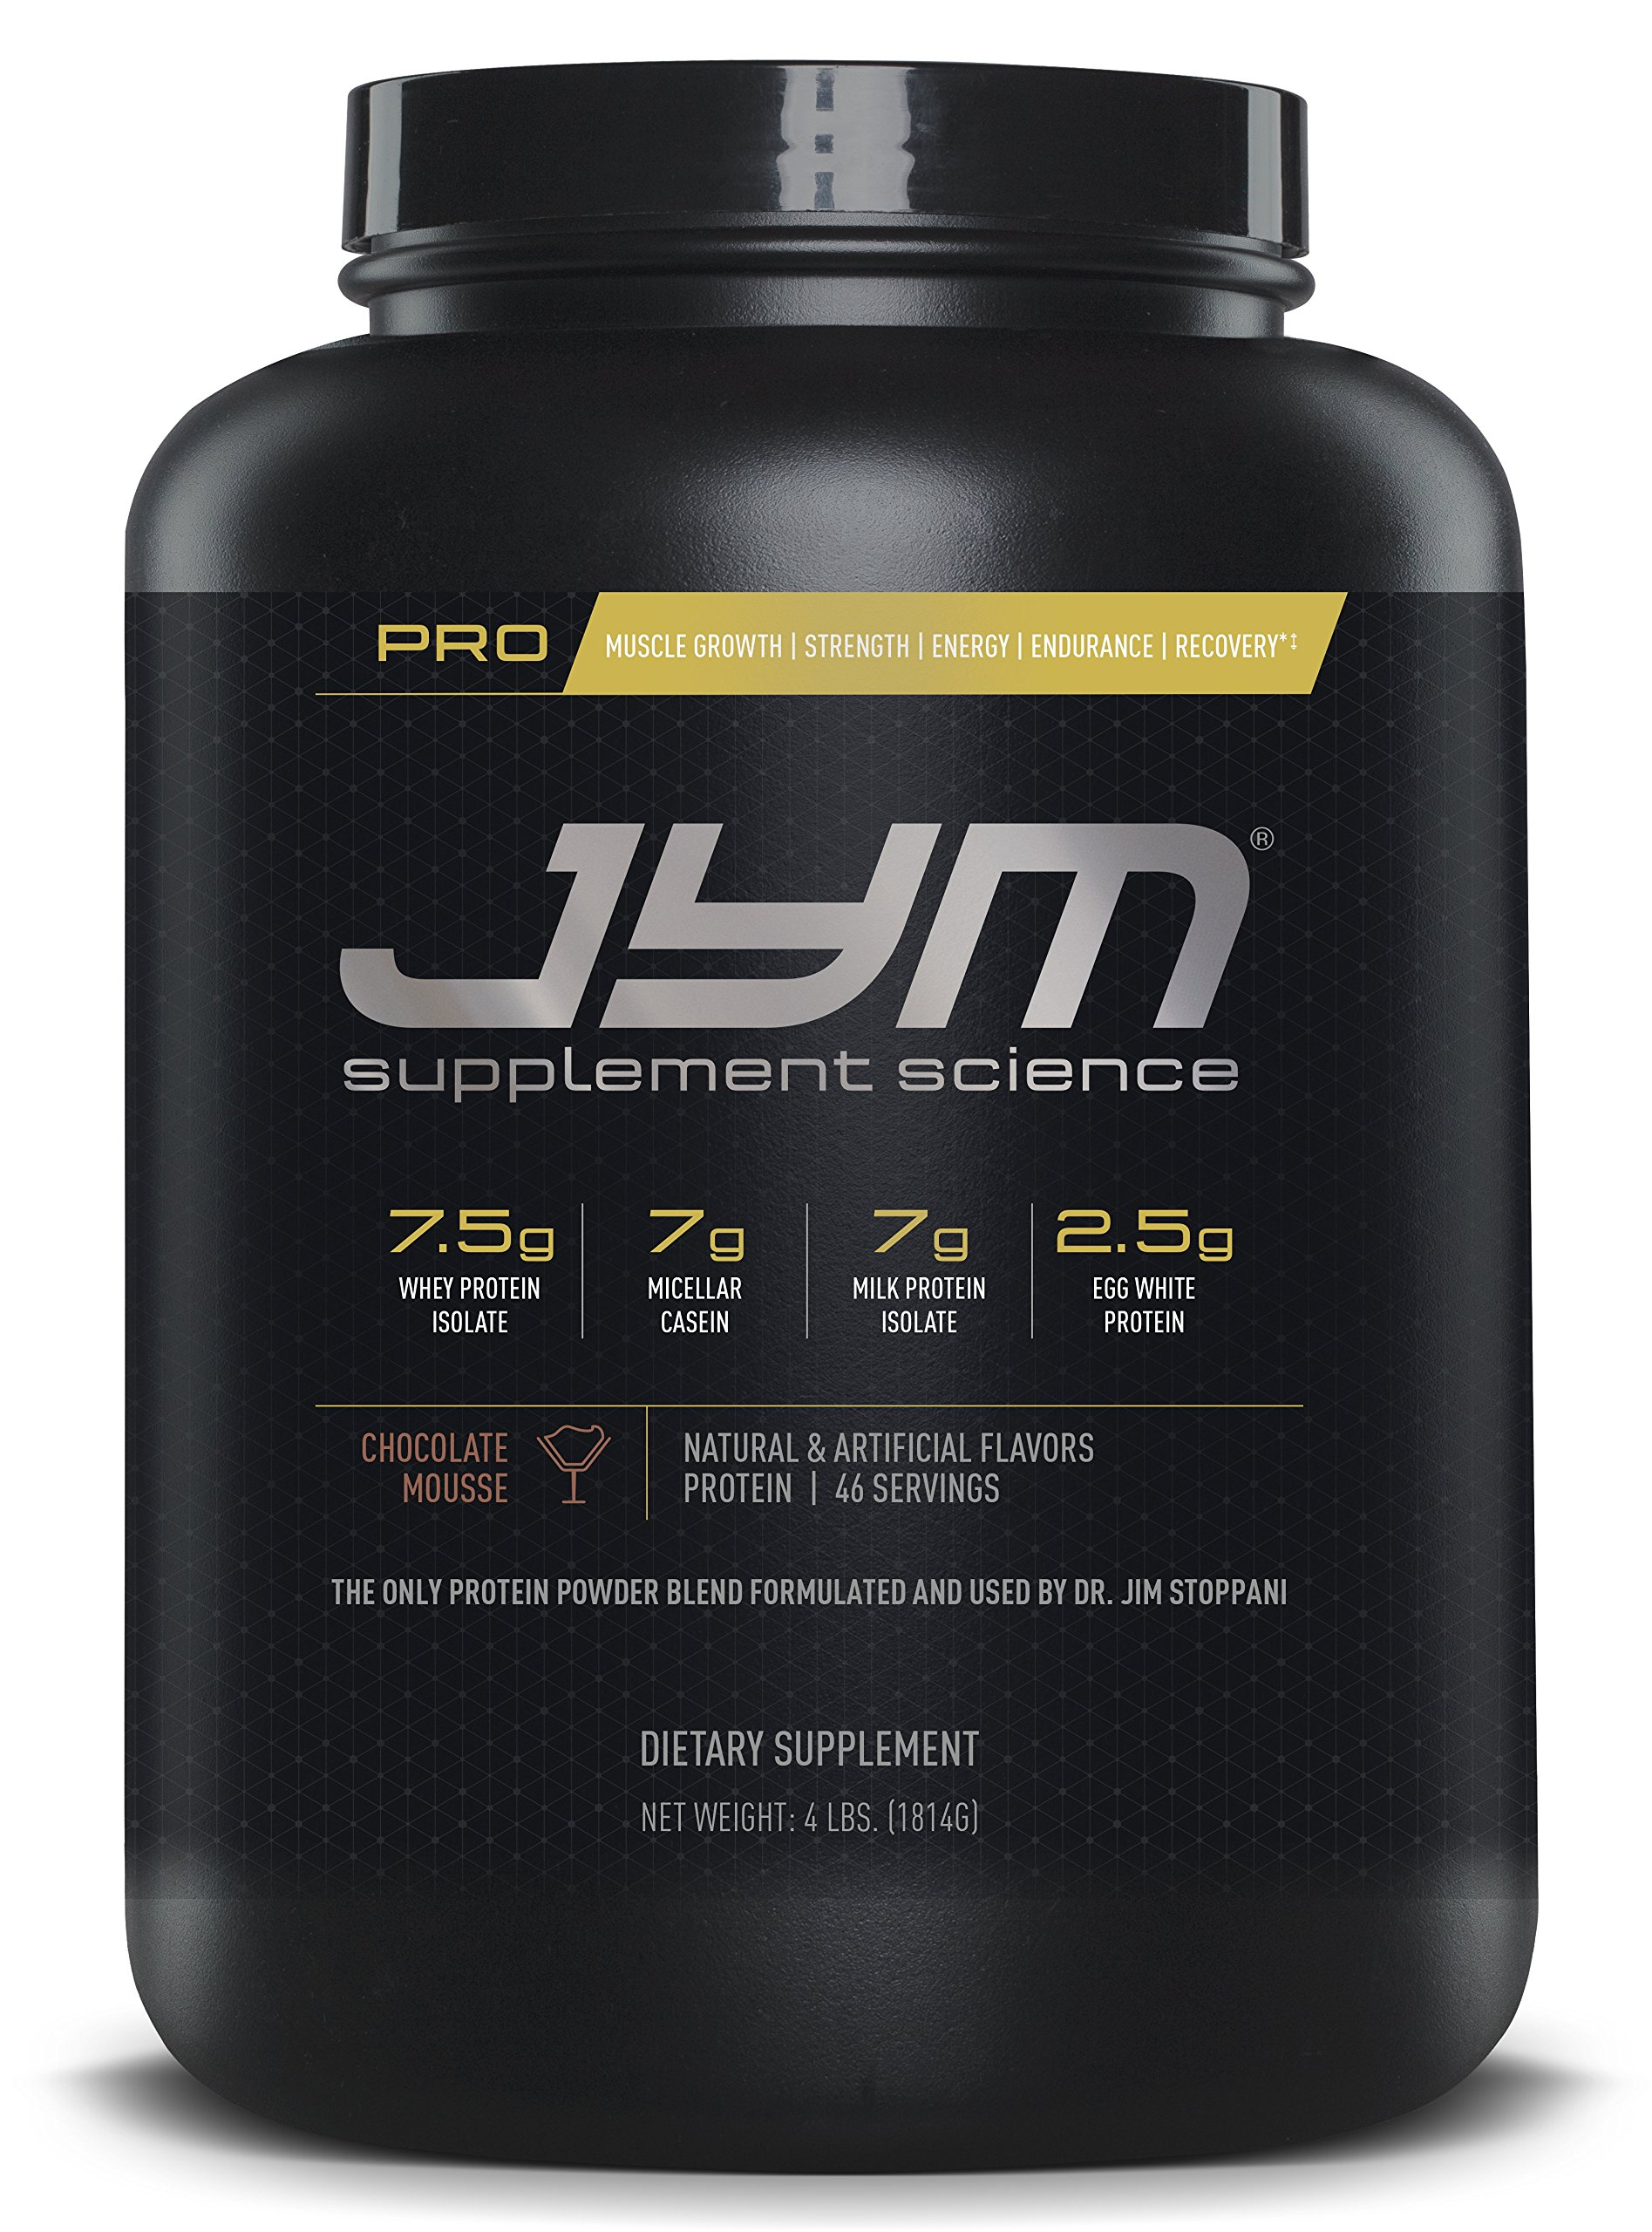 Pro JYM Protein Powder - Egg White, Milk, Whey Protein Isolates & Micellar Casein | JYM Supplement Science | Chocolate Mousse Flavor, 4 lb by JYM Supplement Science